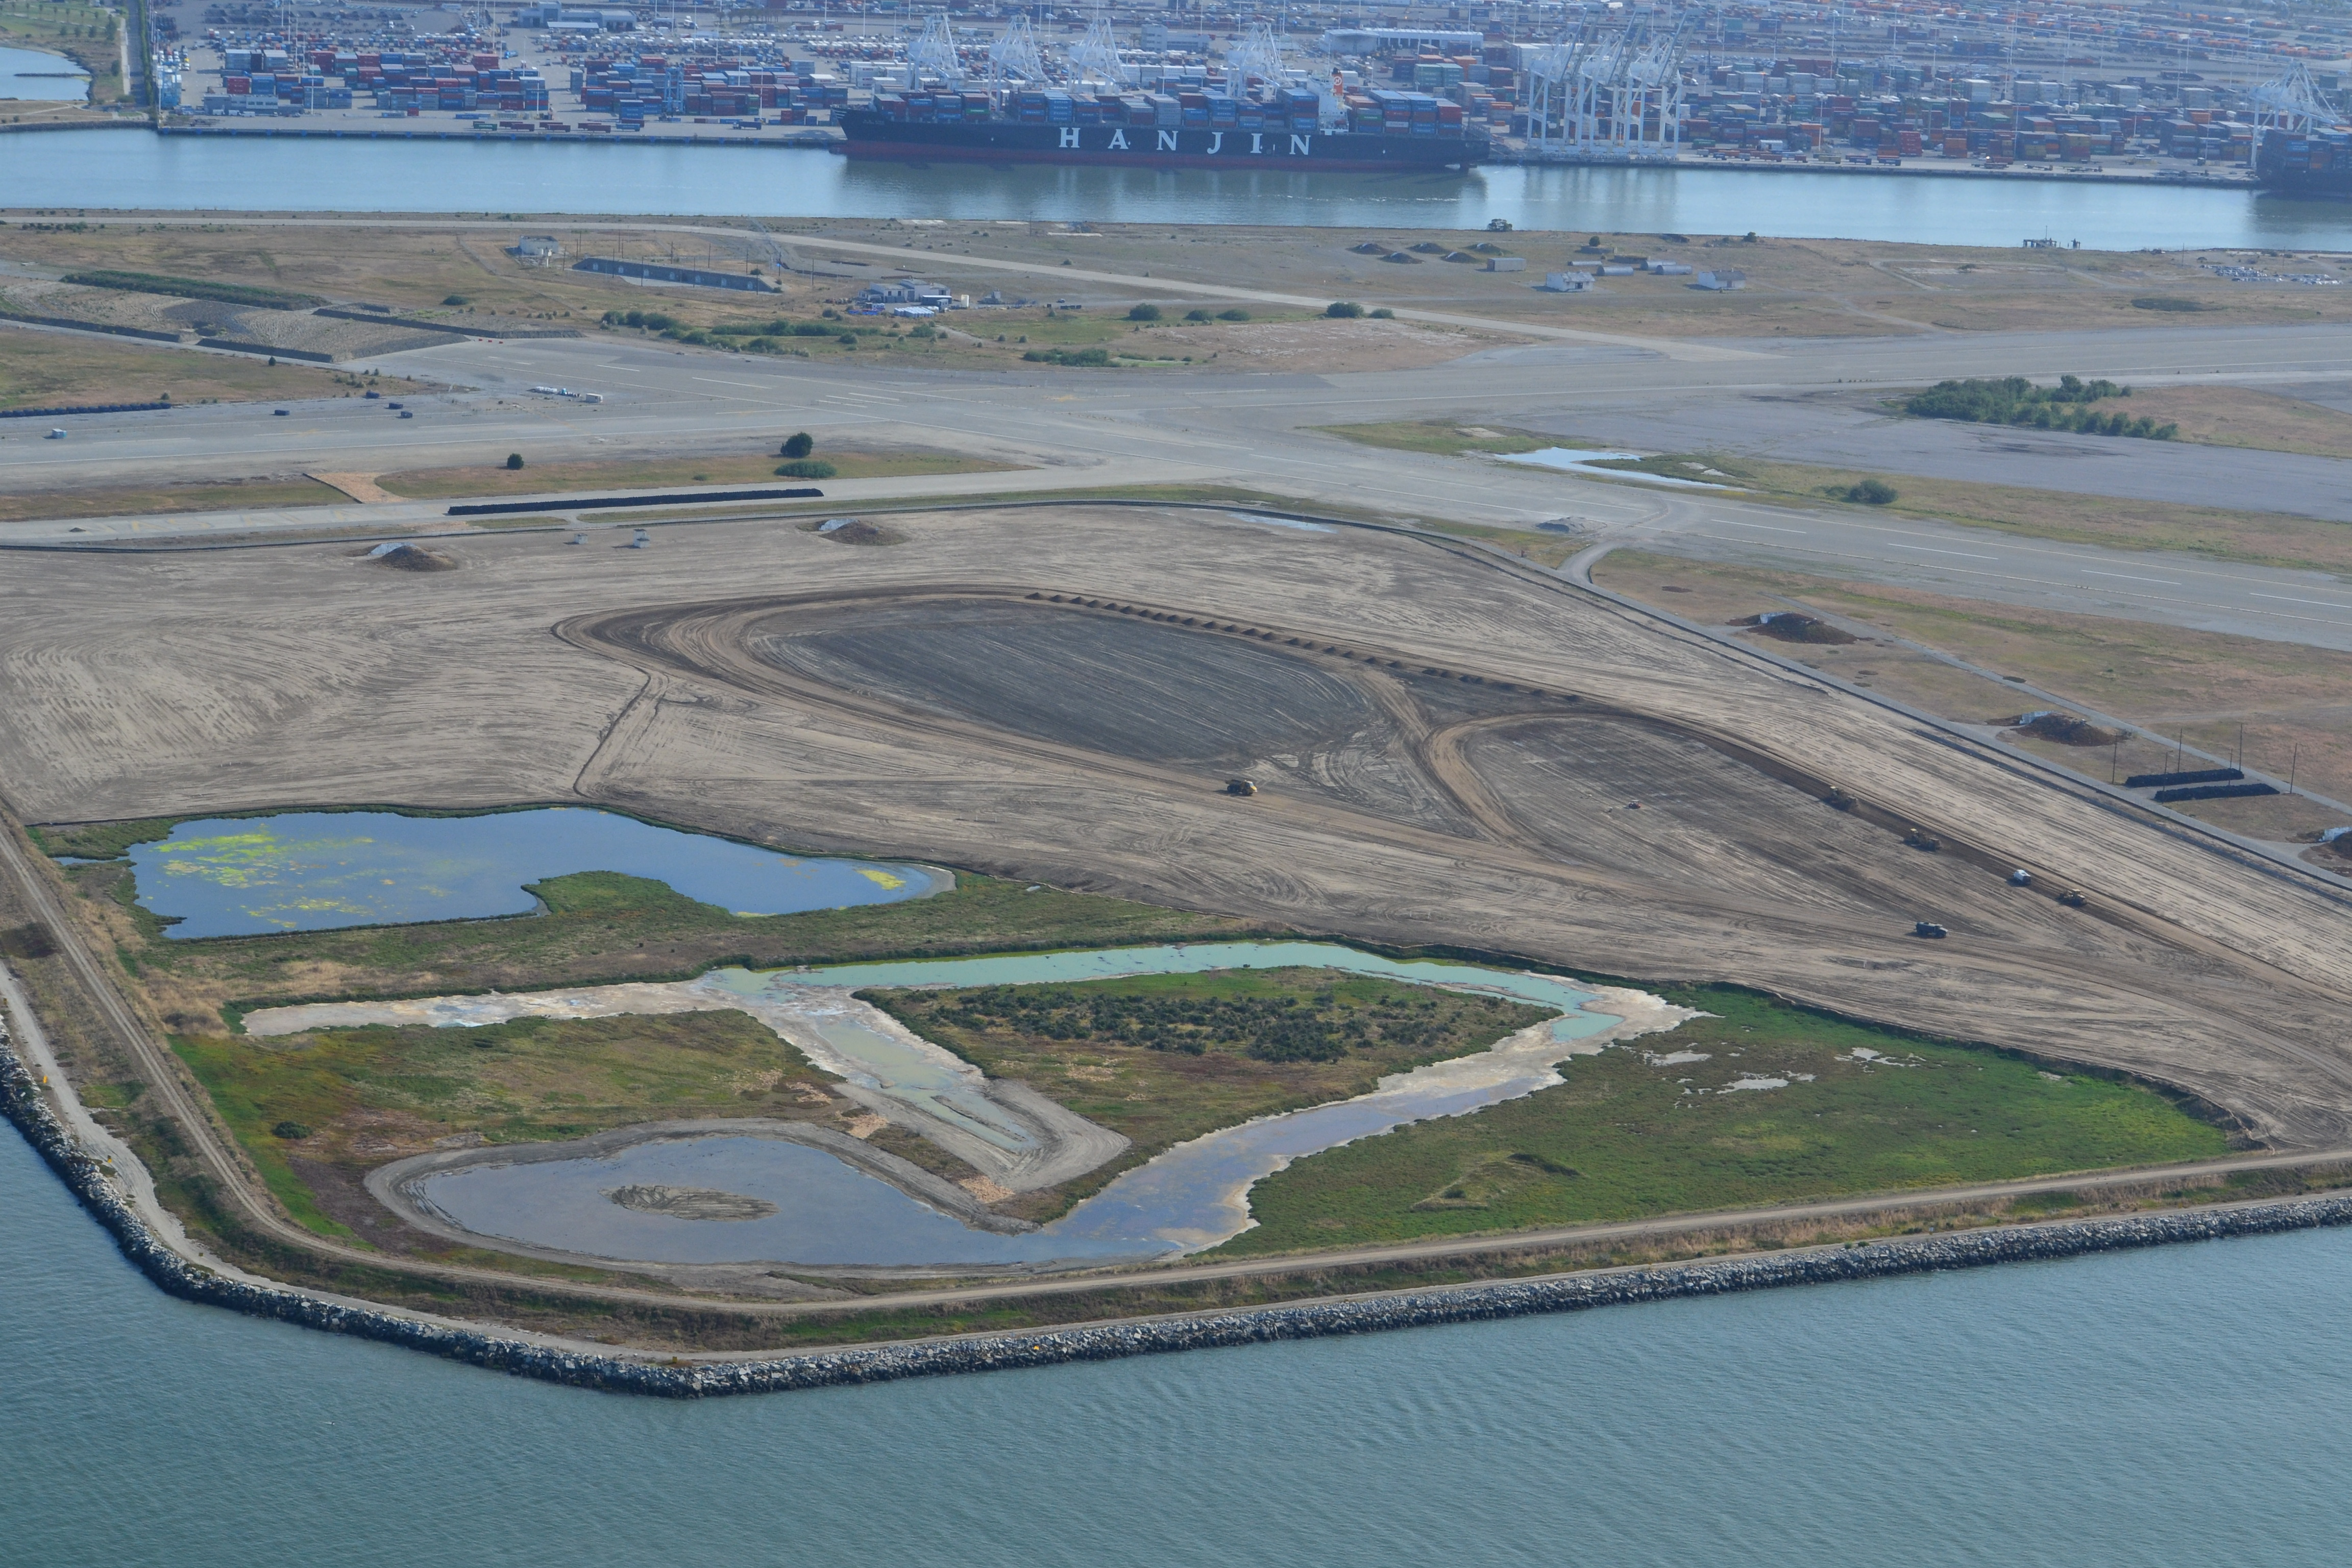 Site 2 wetland area and adjacent contouring underway in early July 2013.  Wetland area has since been expanded by several acres.  Port of Oakland is in the background.  Bay Trail will eventually follow the foreground shoreline along the Bay.  Funding and construction of the Bay Trail is not part of this project, and is yet to be funded.